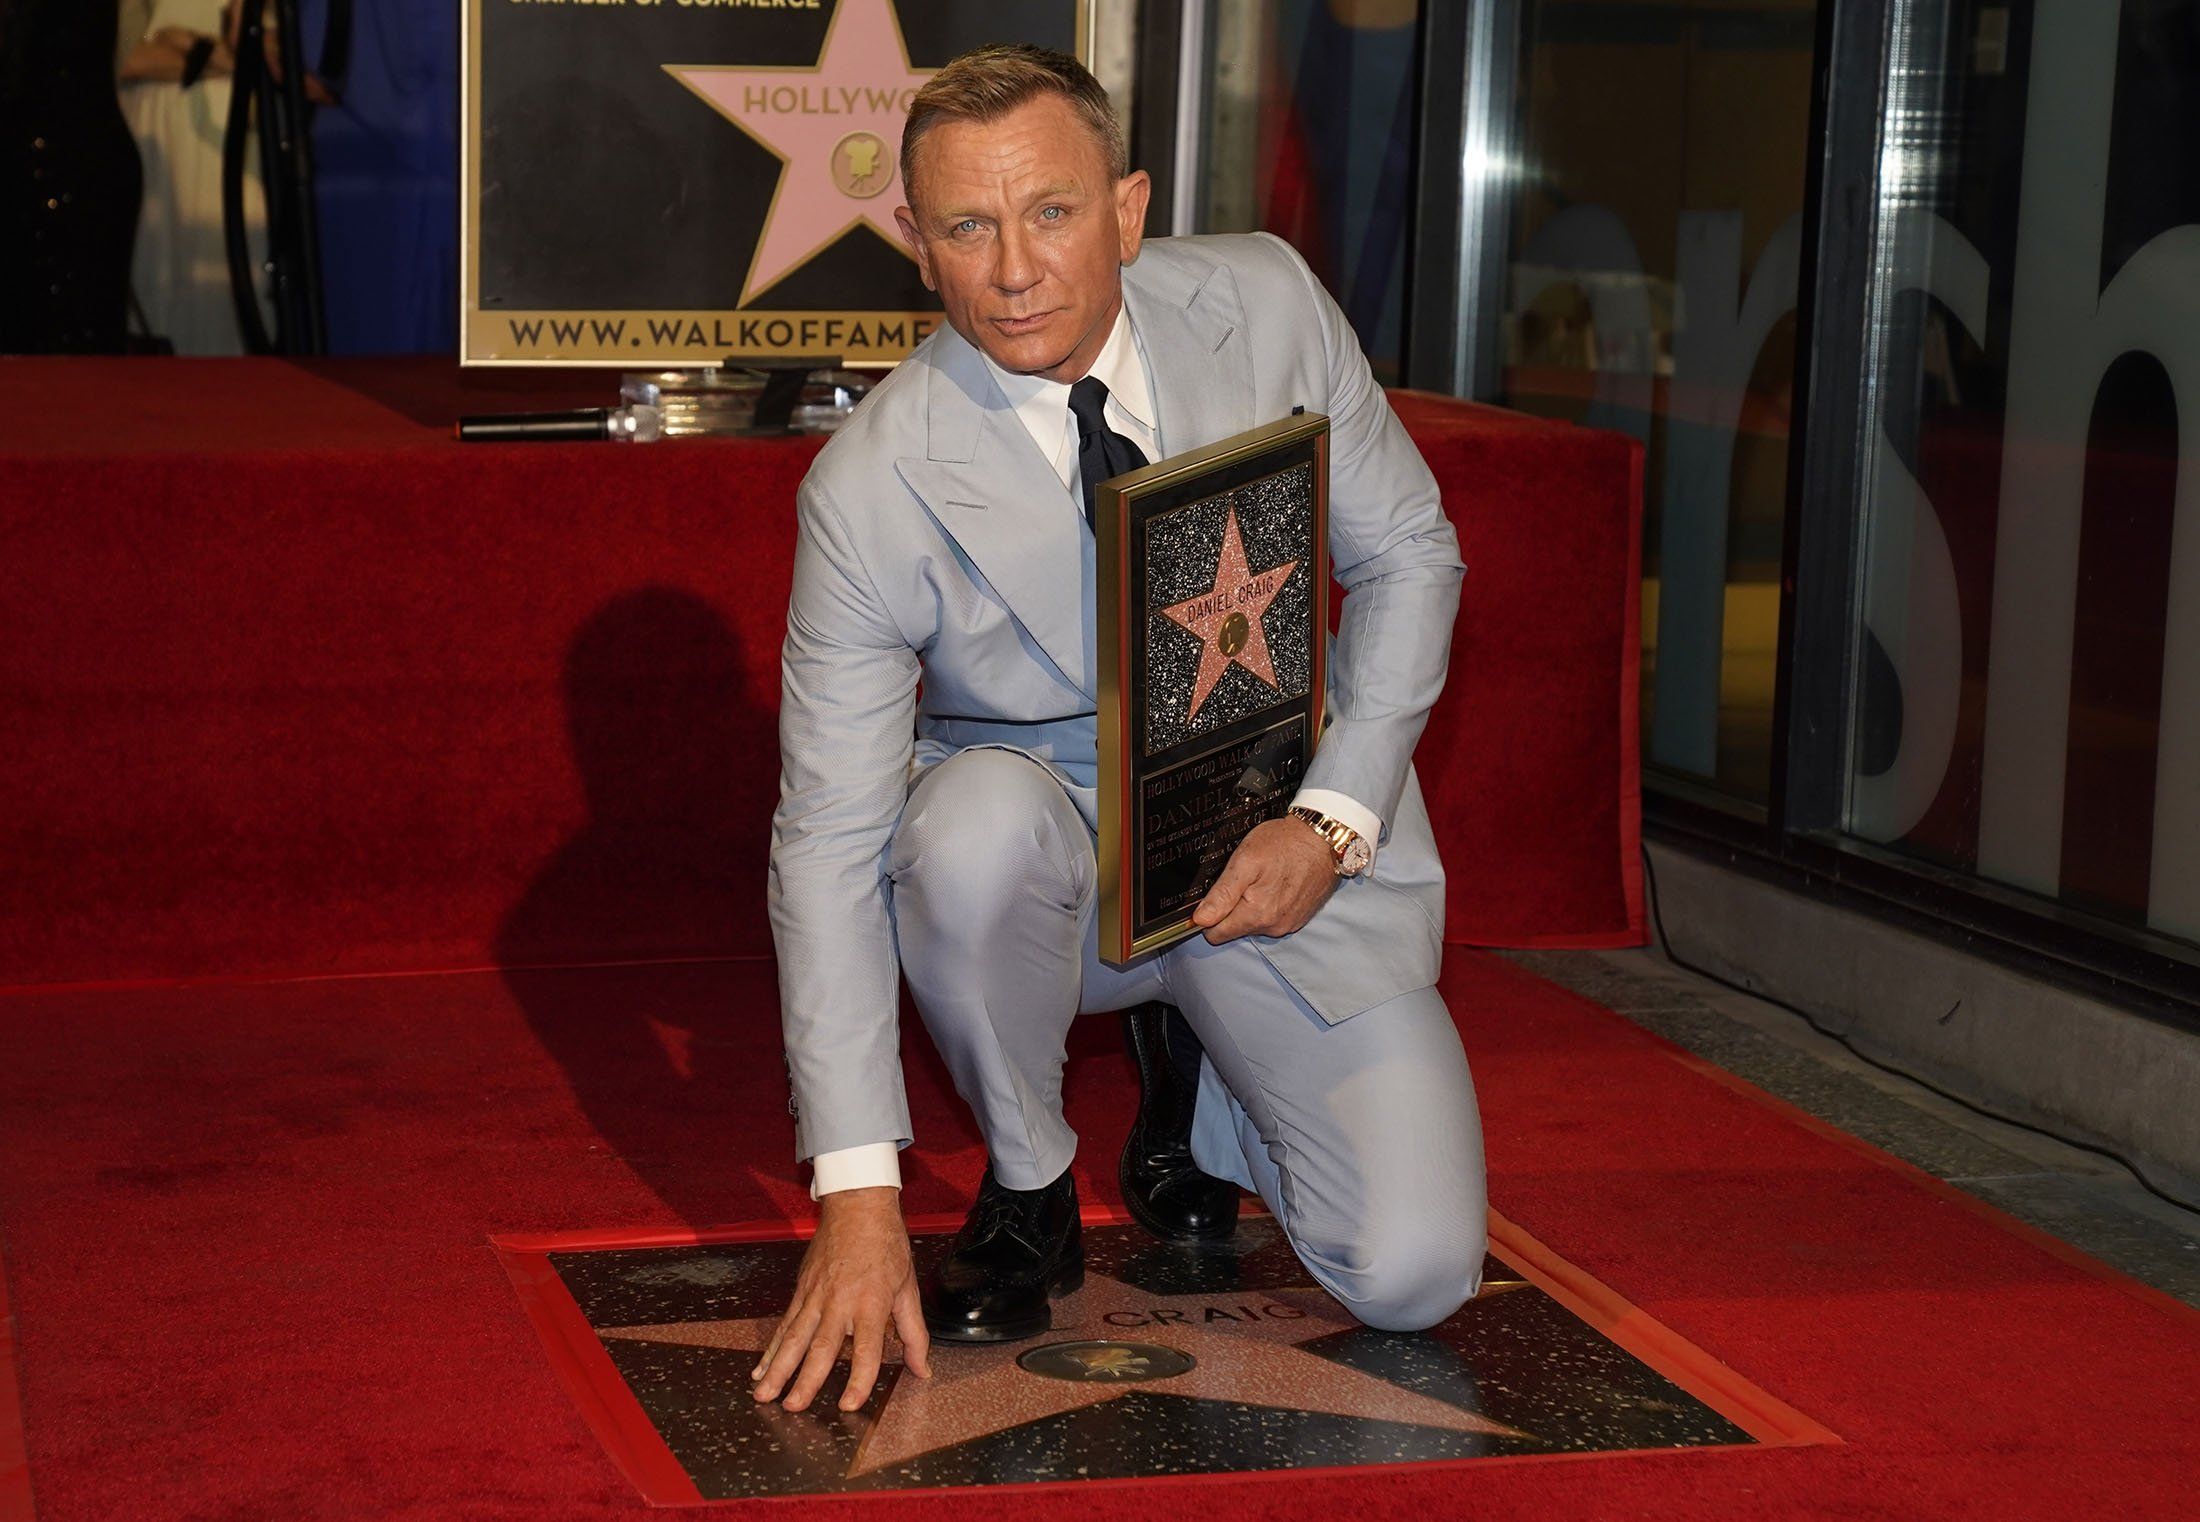 Daniel Craig poses atop his new star on the Hollywood Walk of Fame while holding a replica of the star during a ceremony in his honor in Los Angeles, U.S., Oct. 6, 2021. (AP Photo)